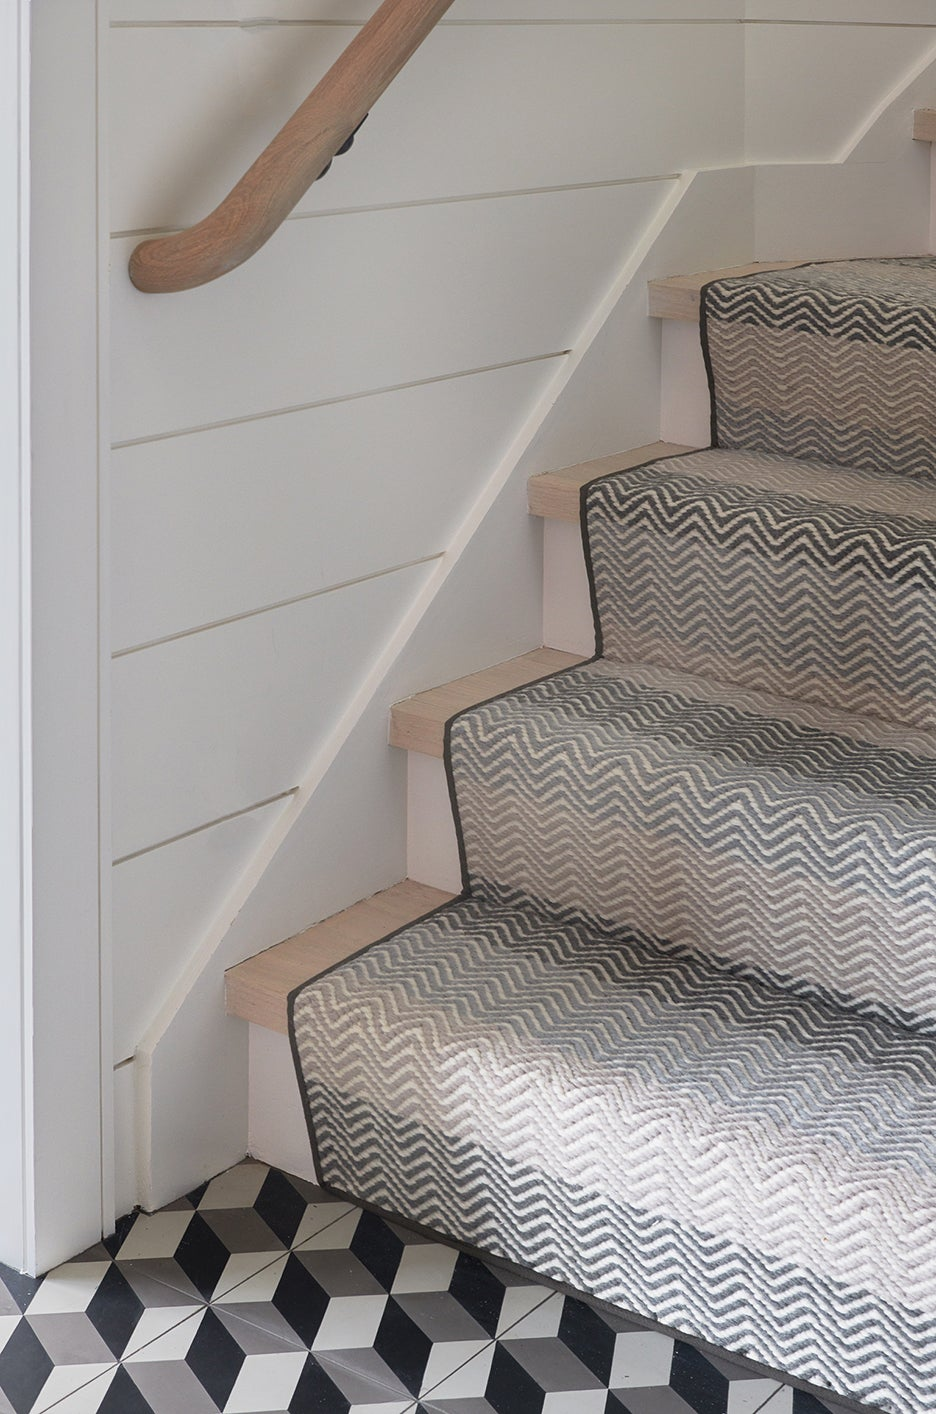 a squiggly carpet on a staircase